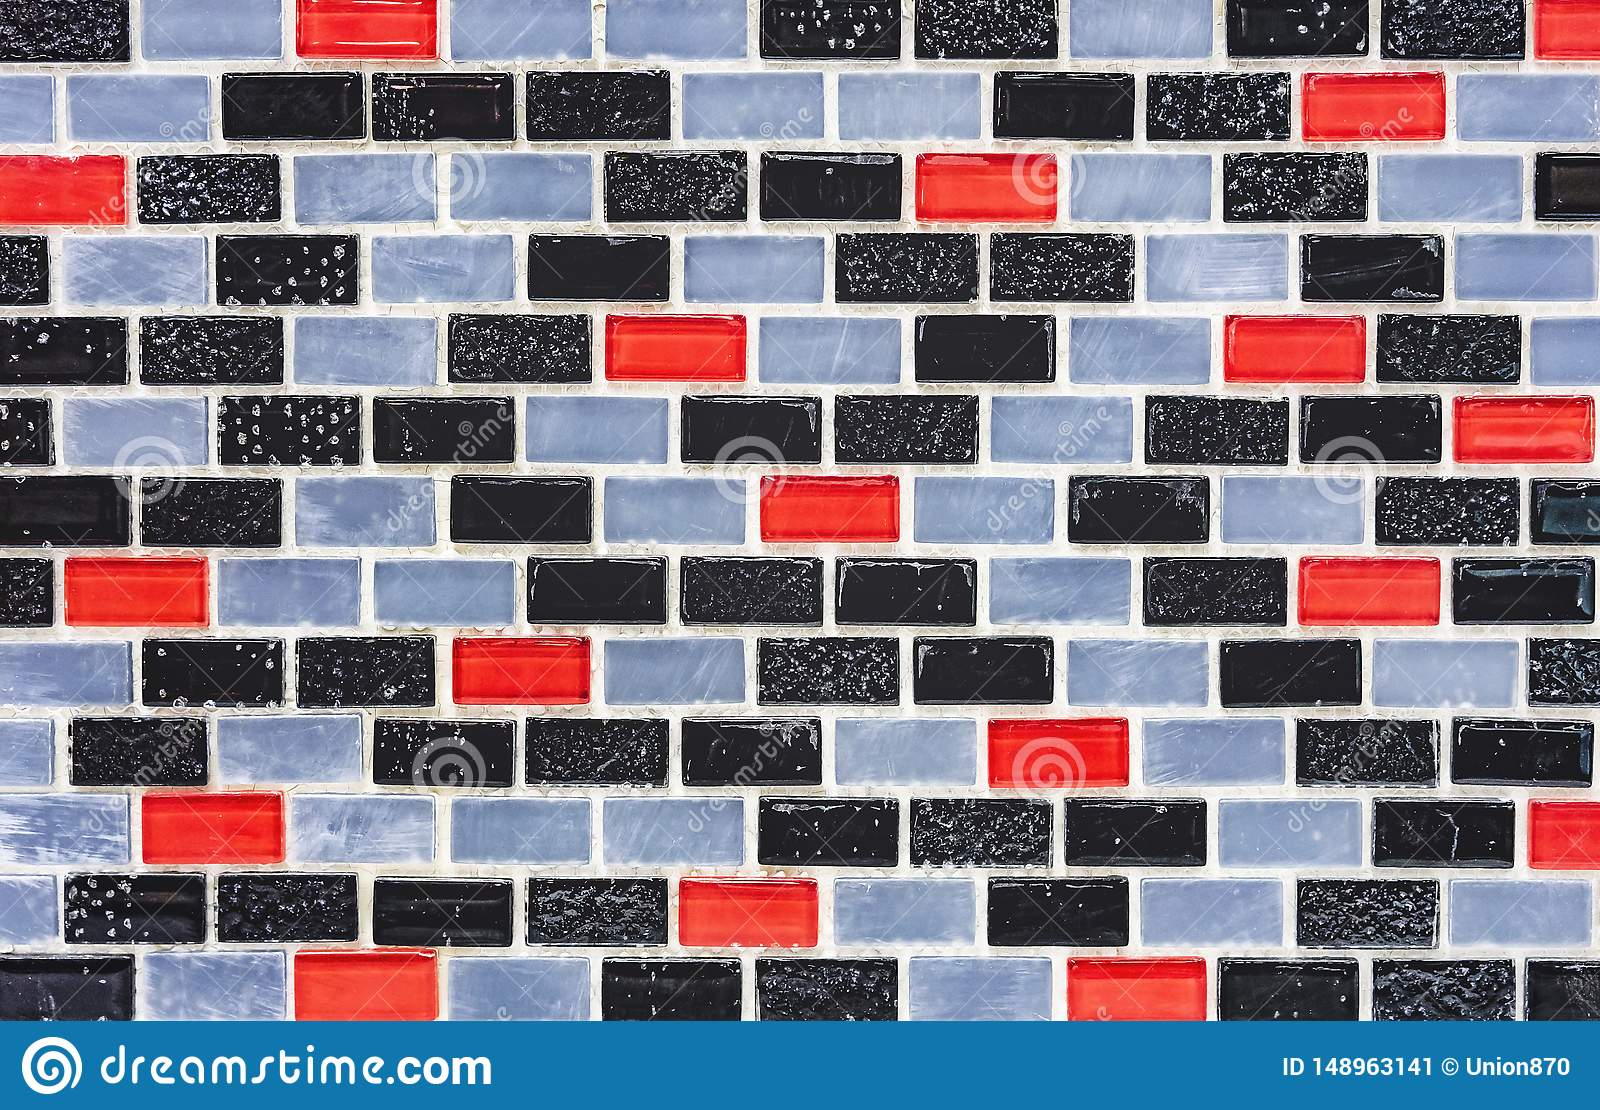 Ceramic Tile Mosaic Background And Texture Tile Mosaic Tile Mosaic In The Interior Of The Bathroom Or Kitchen Image Stock Image Du Tile Texture 148963141